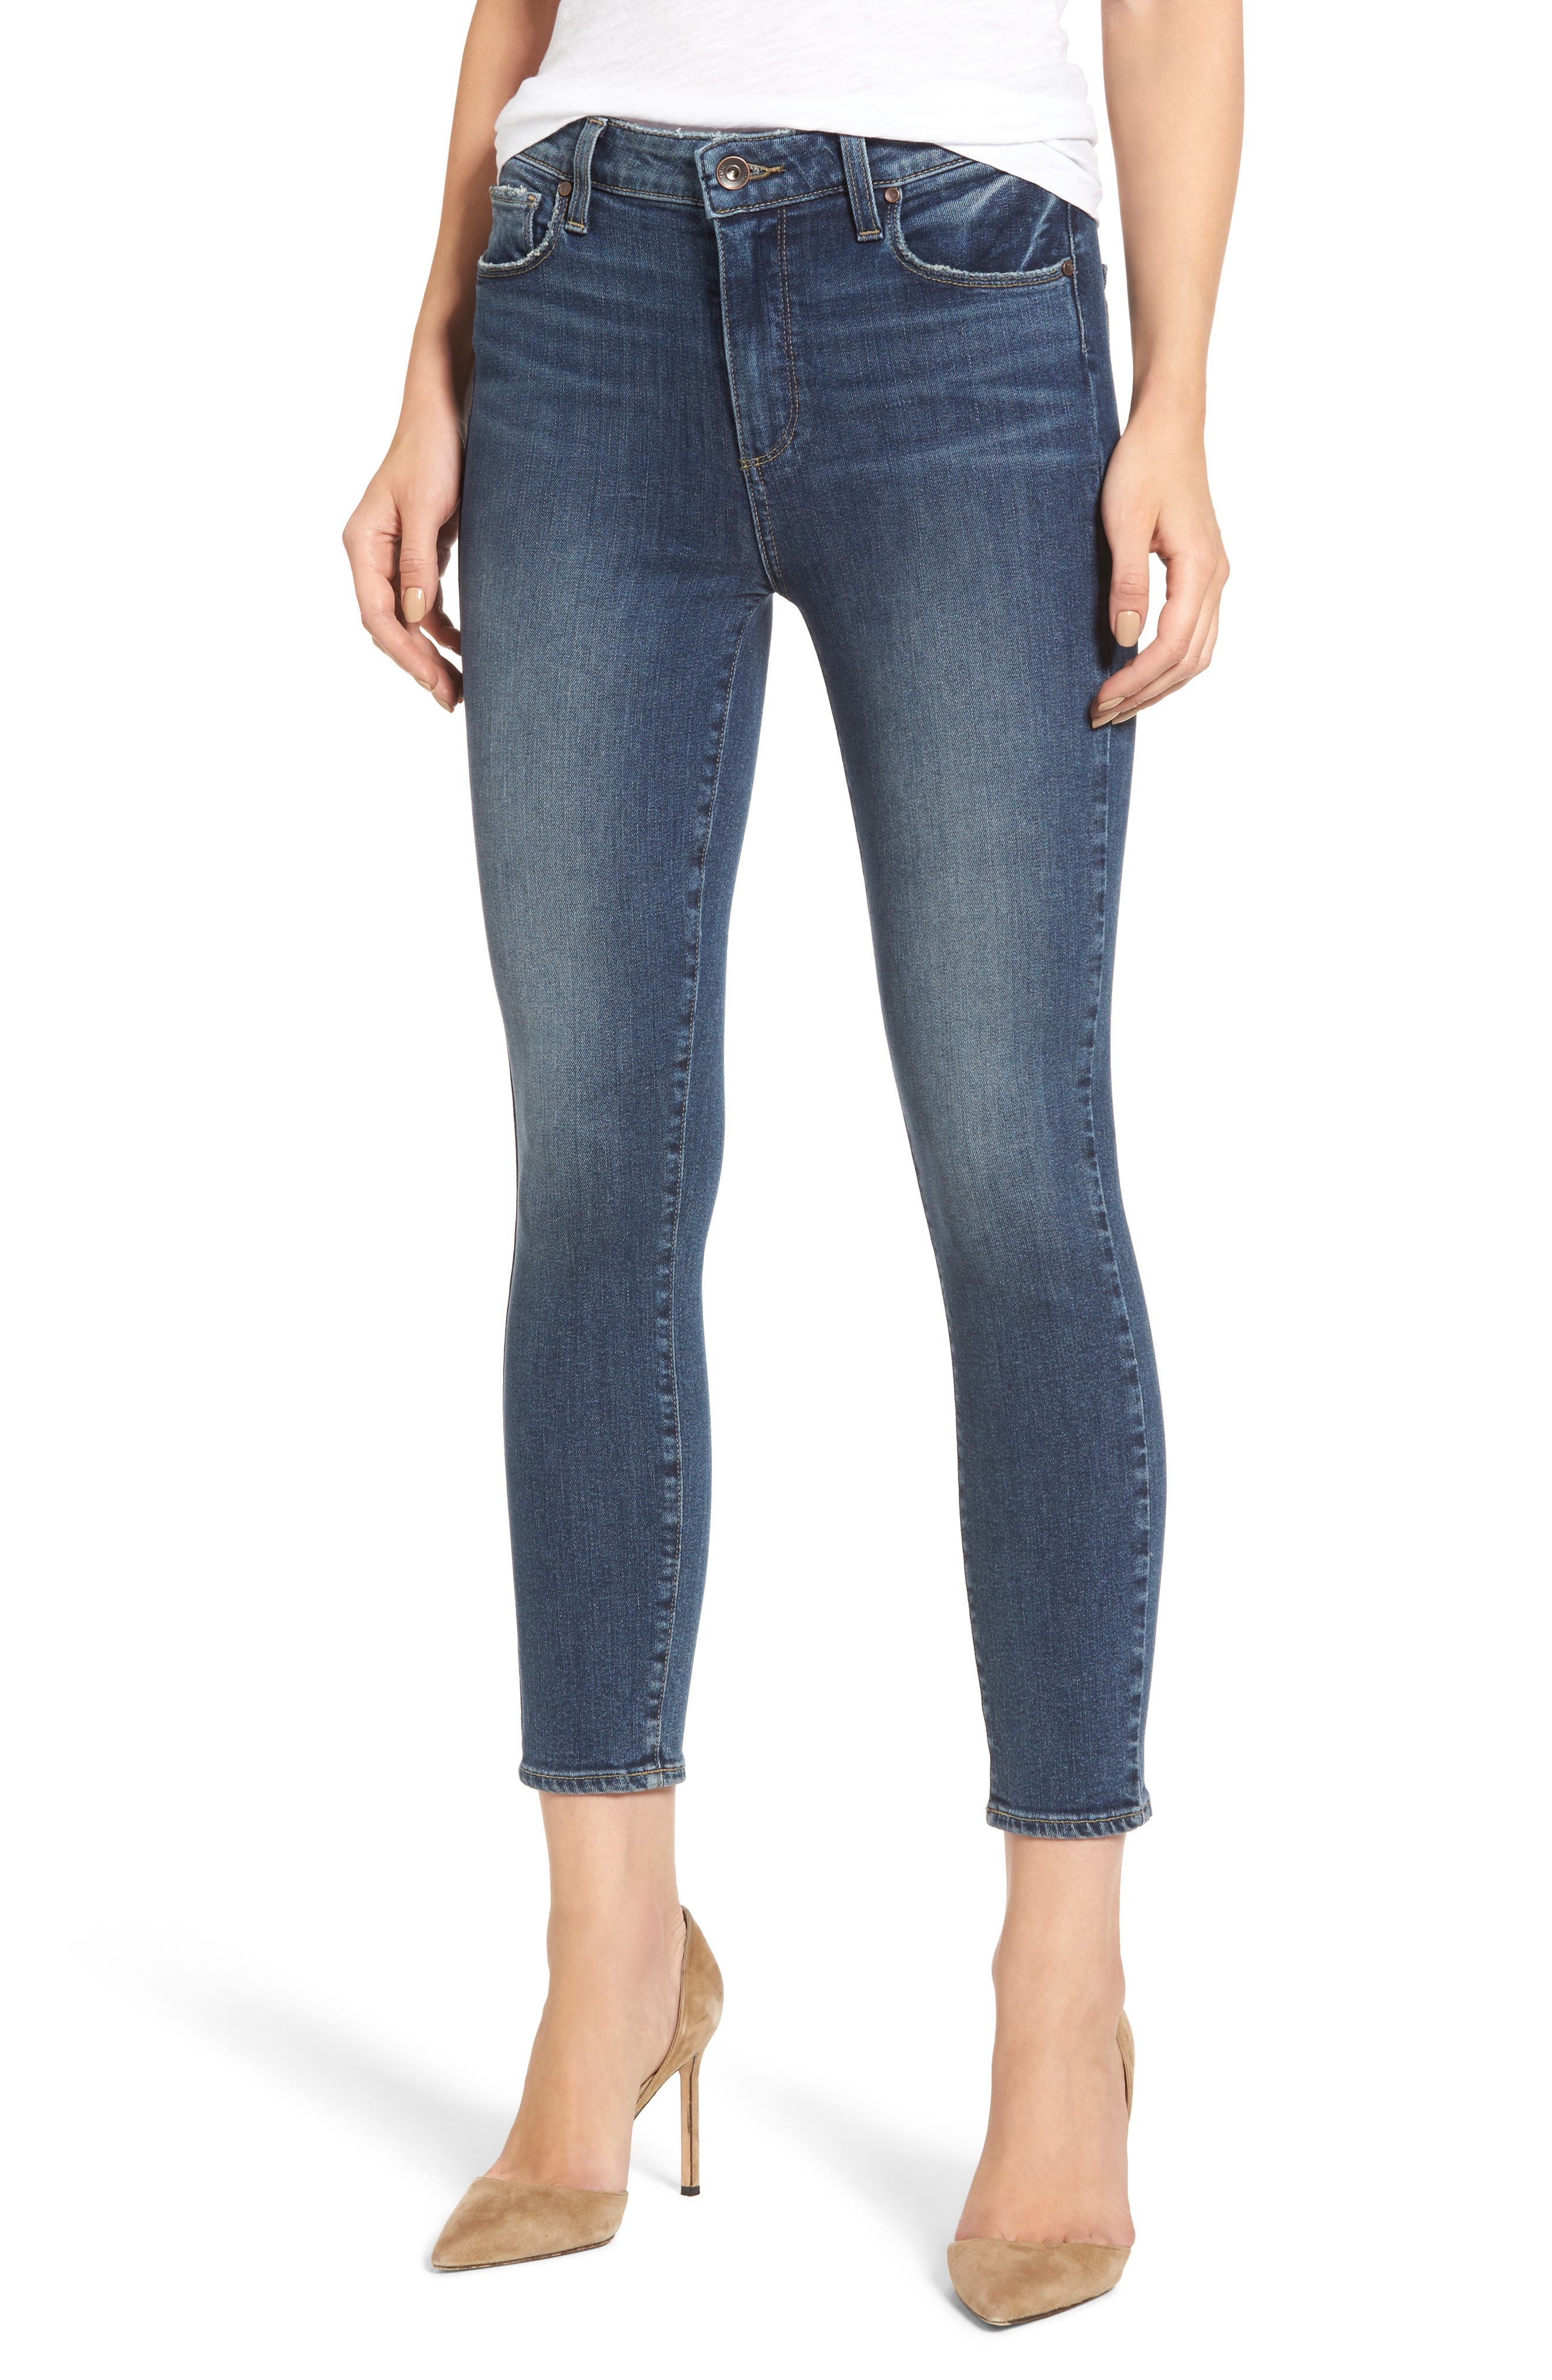 Hoxton High Waist Crop Skinny Jeans,                             Main thumbnail 1, color,                             400